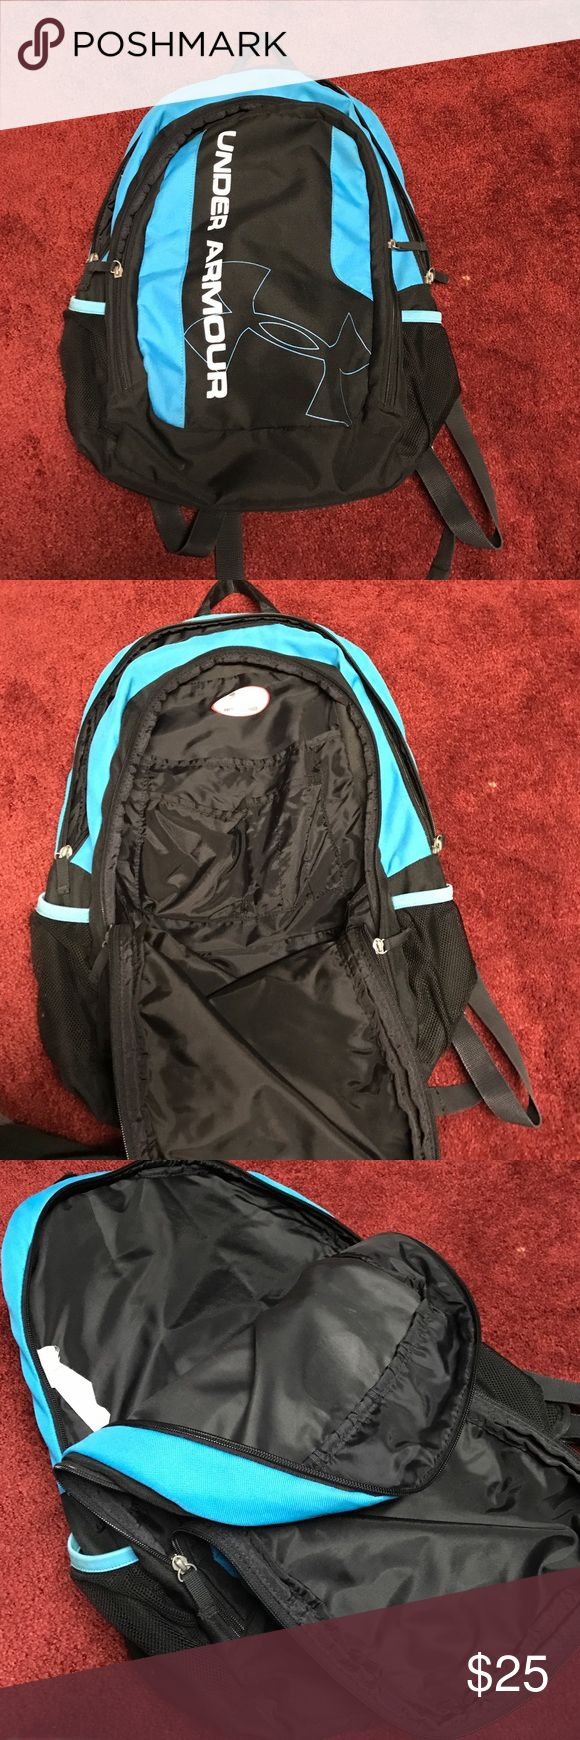 Under Armor Back Pack Was used before. Very good condition. Does have my name written on the under armor spot for the name. Has 2 main pockets, in the front pocket there is a compartment for a phone, pencils, pens, etc. There are two side water bottle holders. Great back pack overall! Can fit books, laptops, great for a student. Under Armour Bags Backpacks